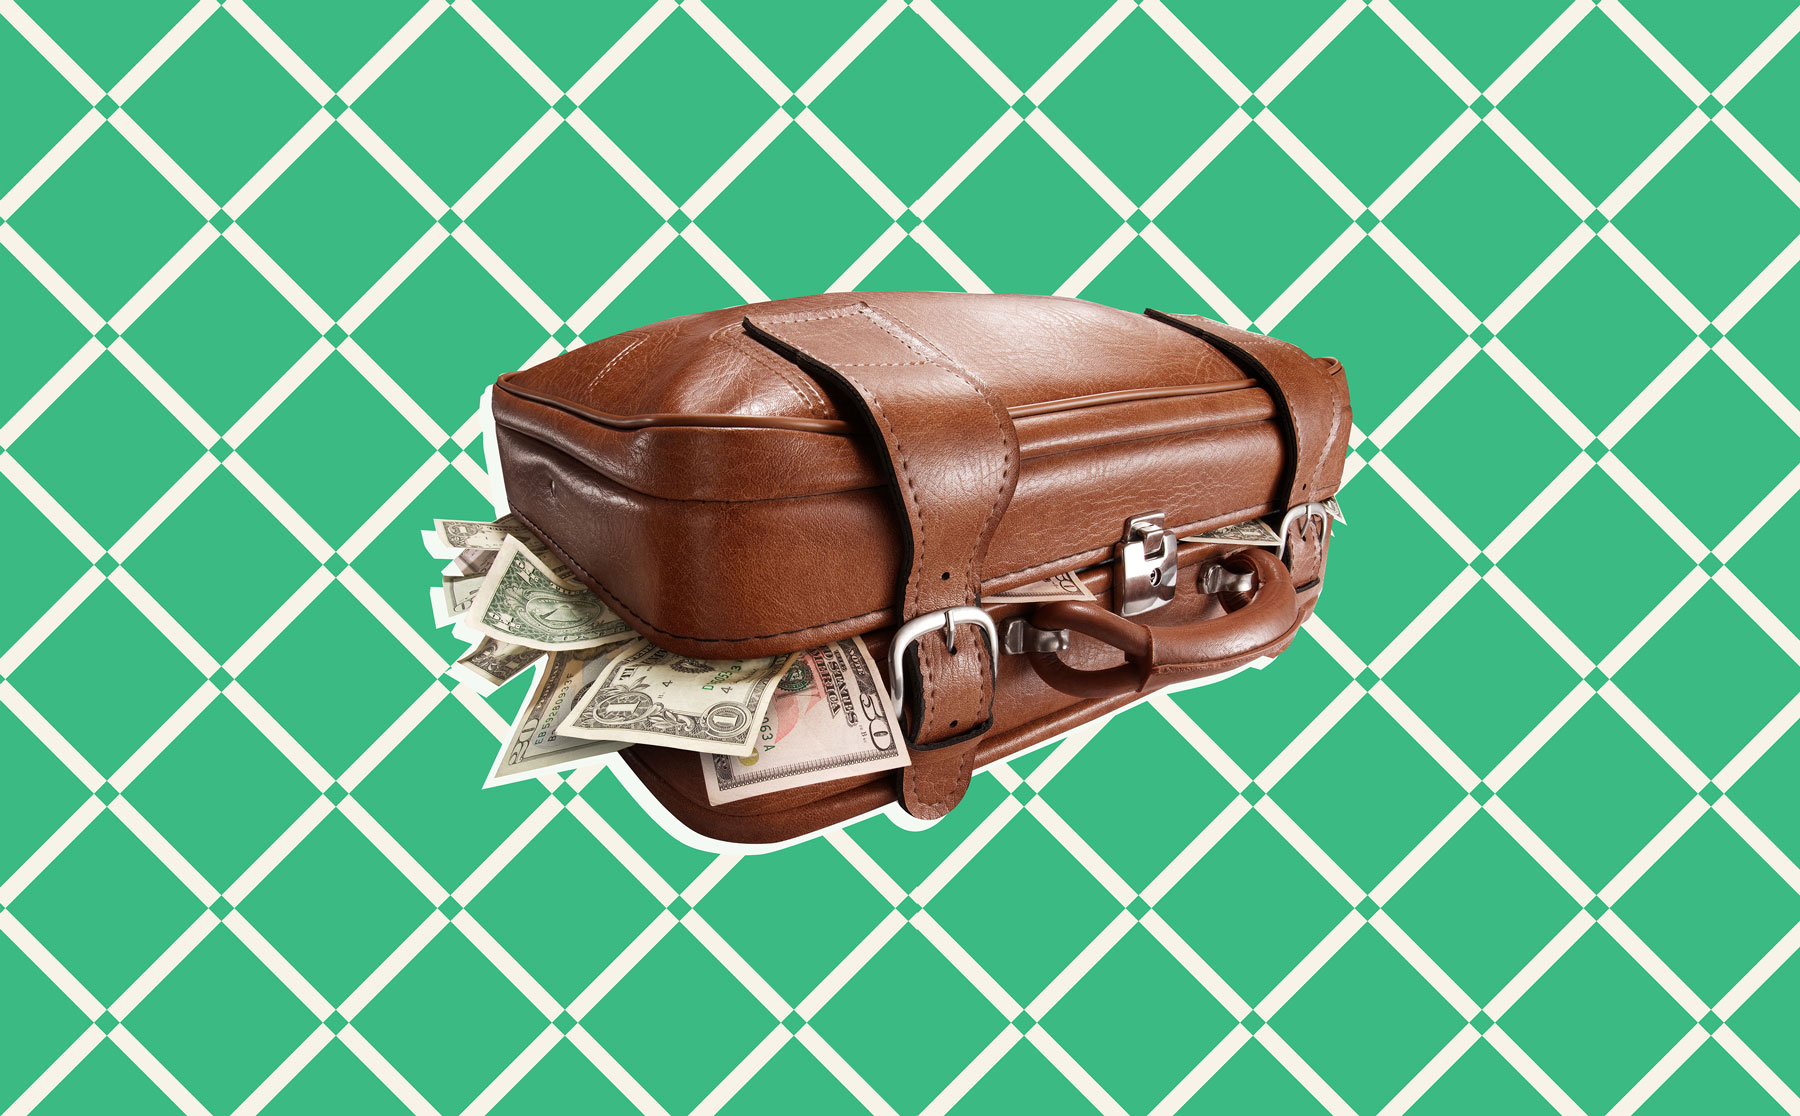 Best carry-on Bag Size - How to save money on bag fees